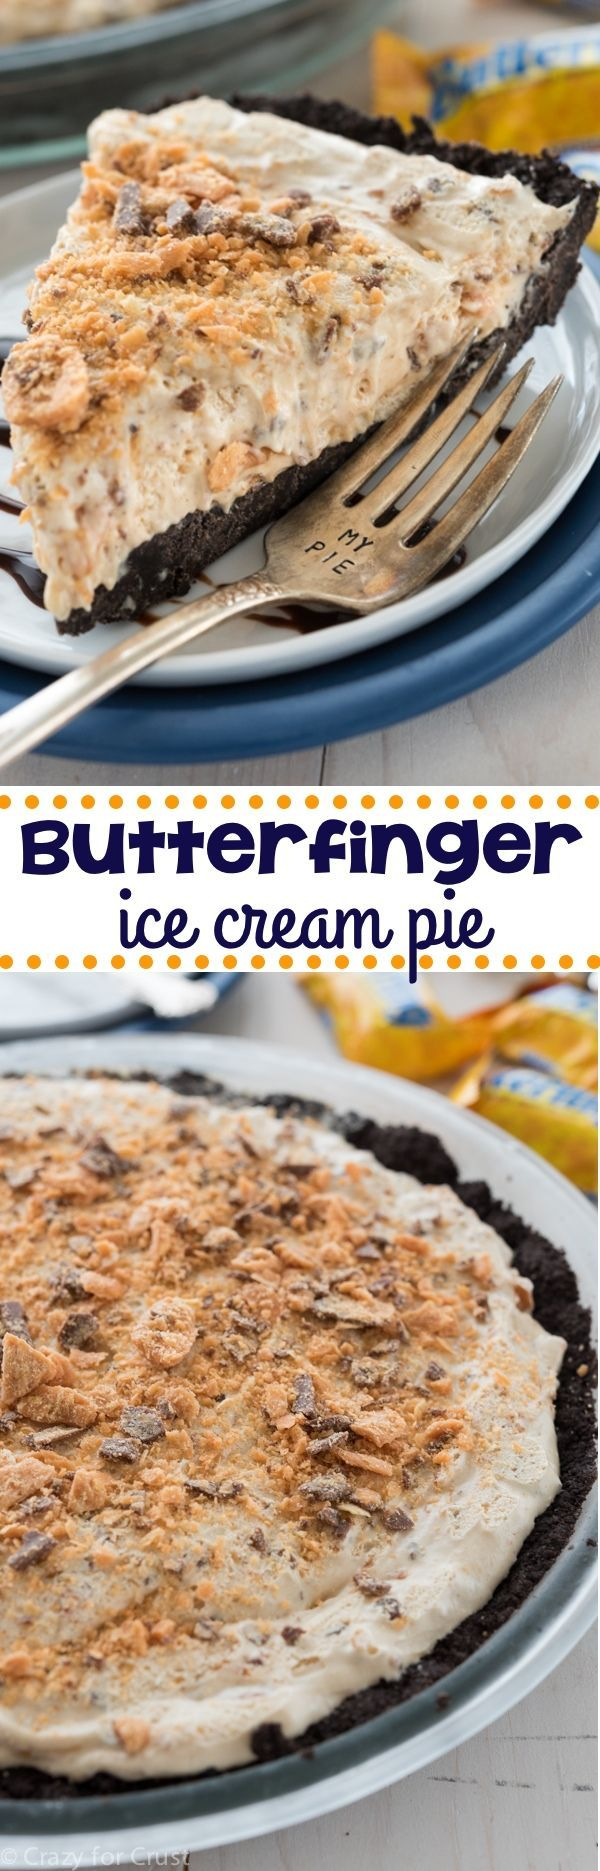 No Bake Butterfinger Ice Cream Pie - an easy no bake pie with an Oreo Crust! Full of peanut butter and Butterfinger ice cream!